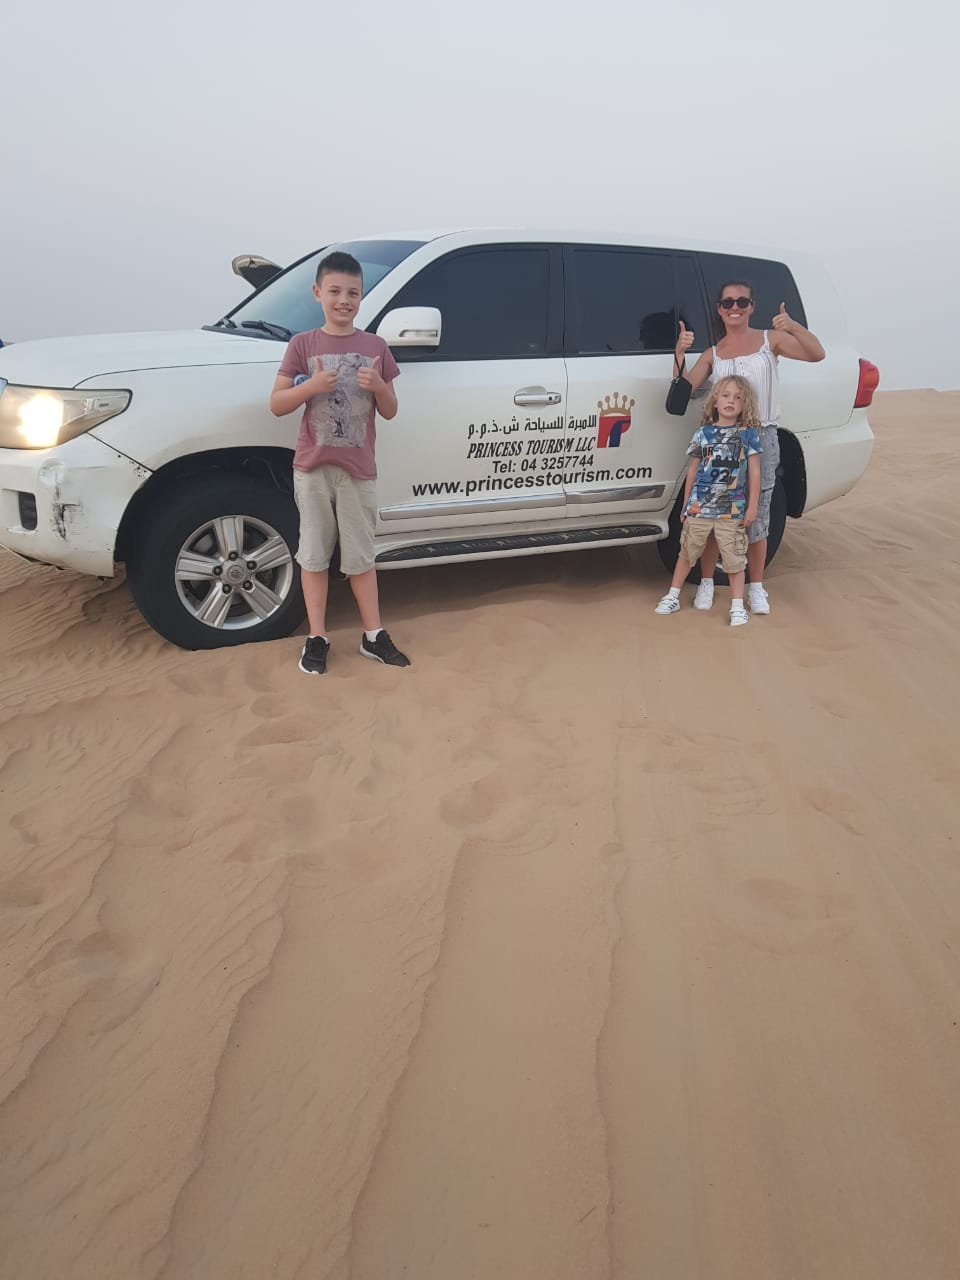 WHY EVENING DESERT SAFARI IS THE BEST?